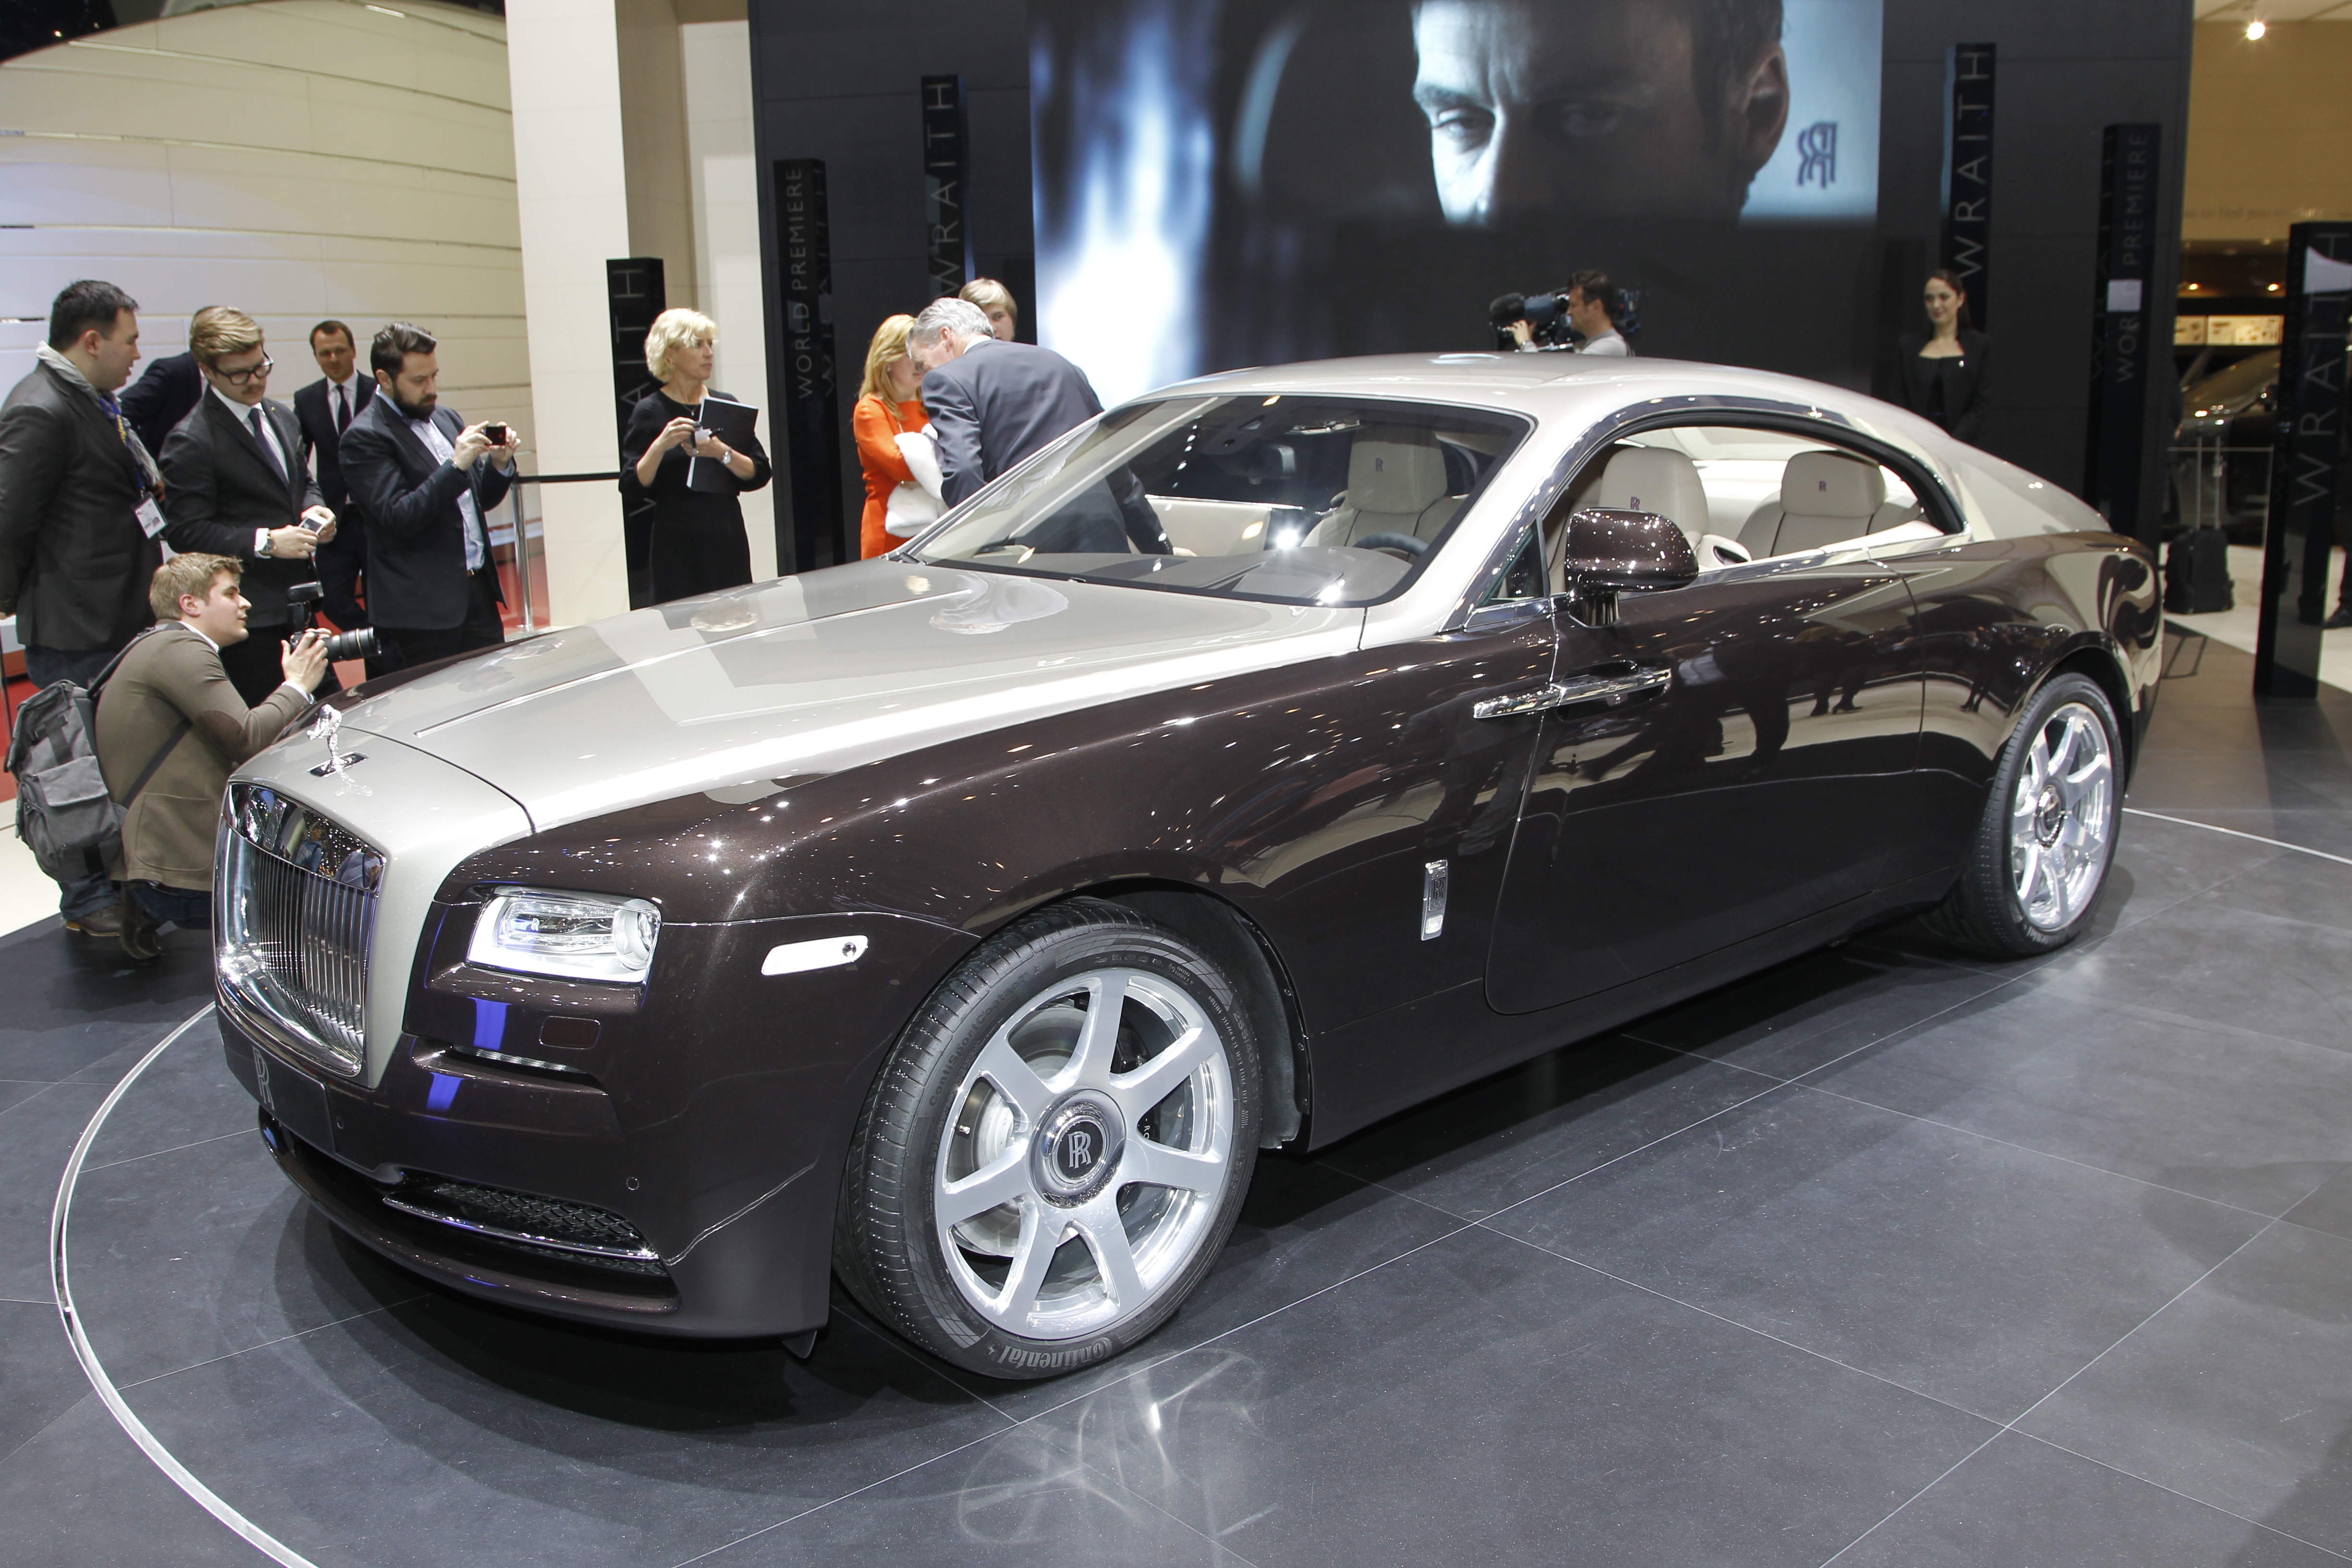 New Rolls Royce Wraith is the most powerful and fastest Rolls-Royce in the company